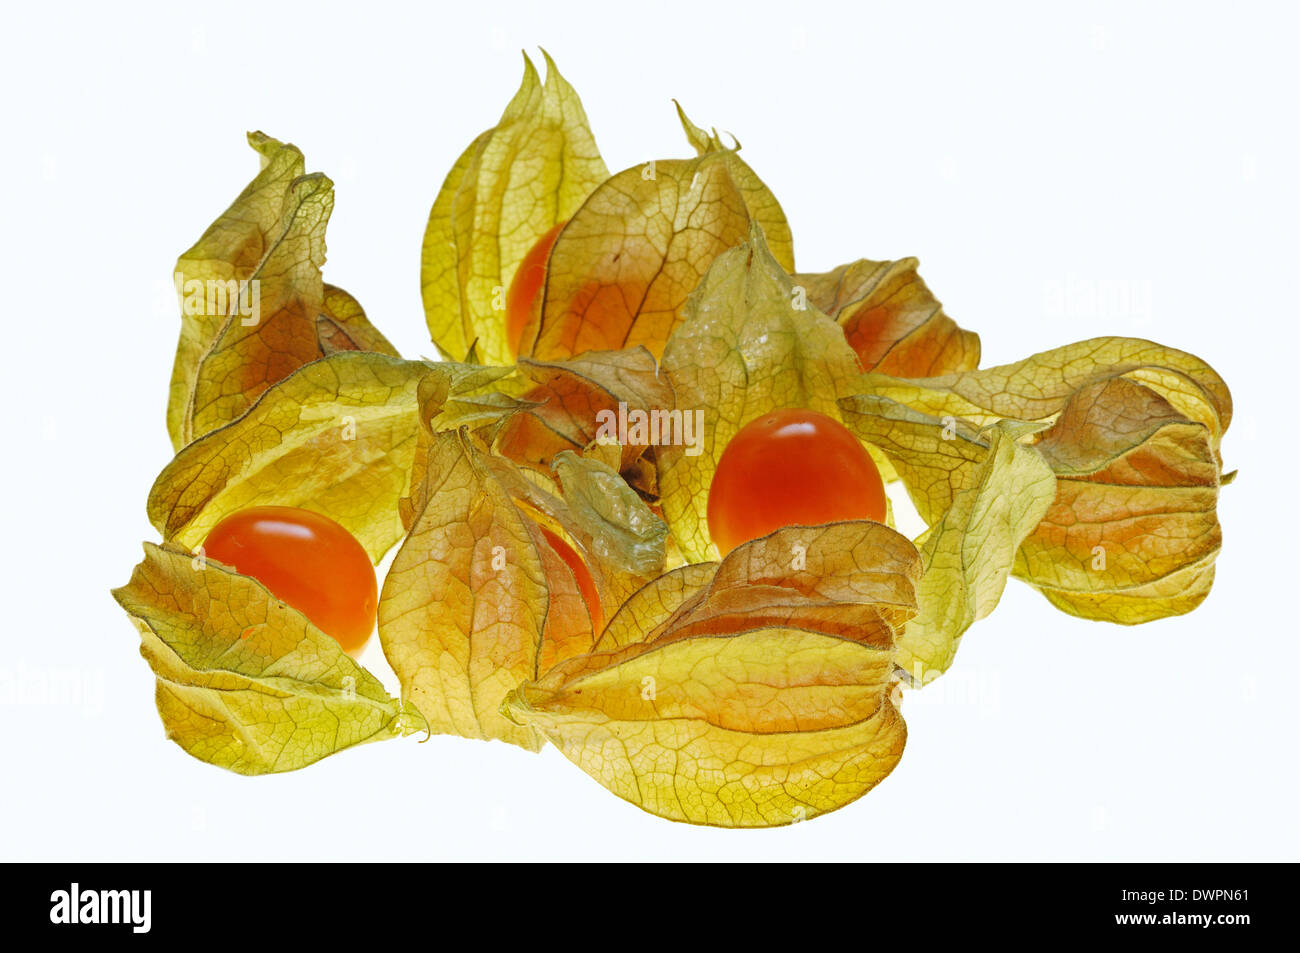 Peruvian Groundcherry Stock Photos & Peruvian Groundcherry